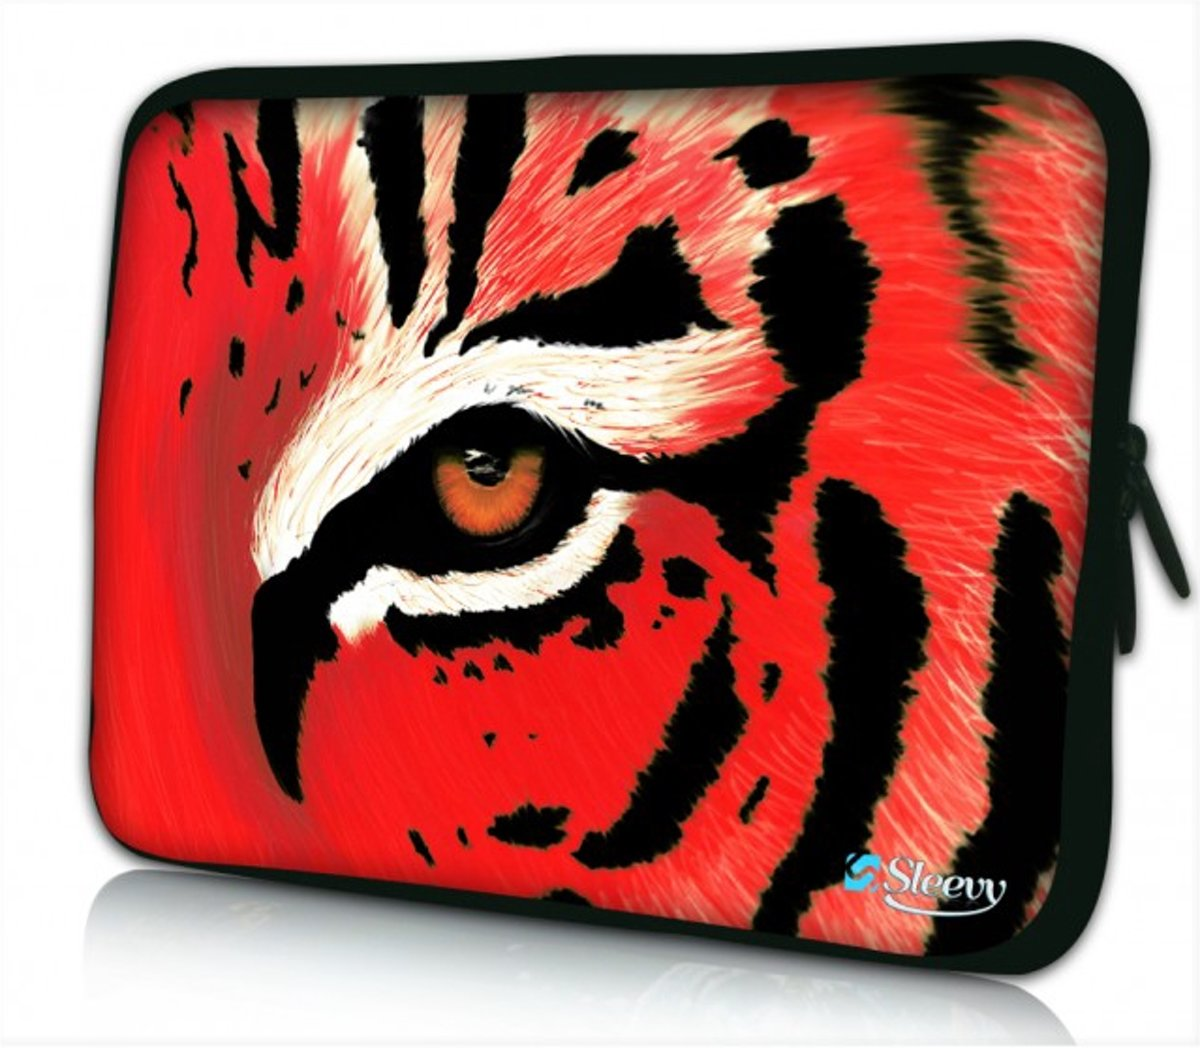 Sleevy 10 laptop/tablet hoes rode tijger - tabletsleeve - tablet sleeve - ipad sleeve